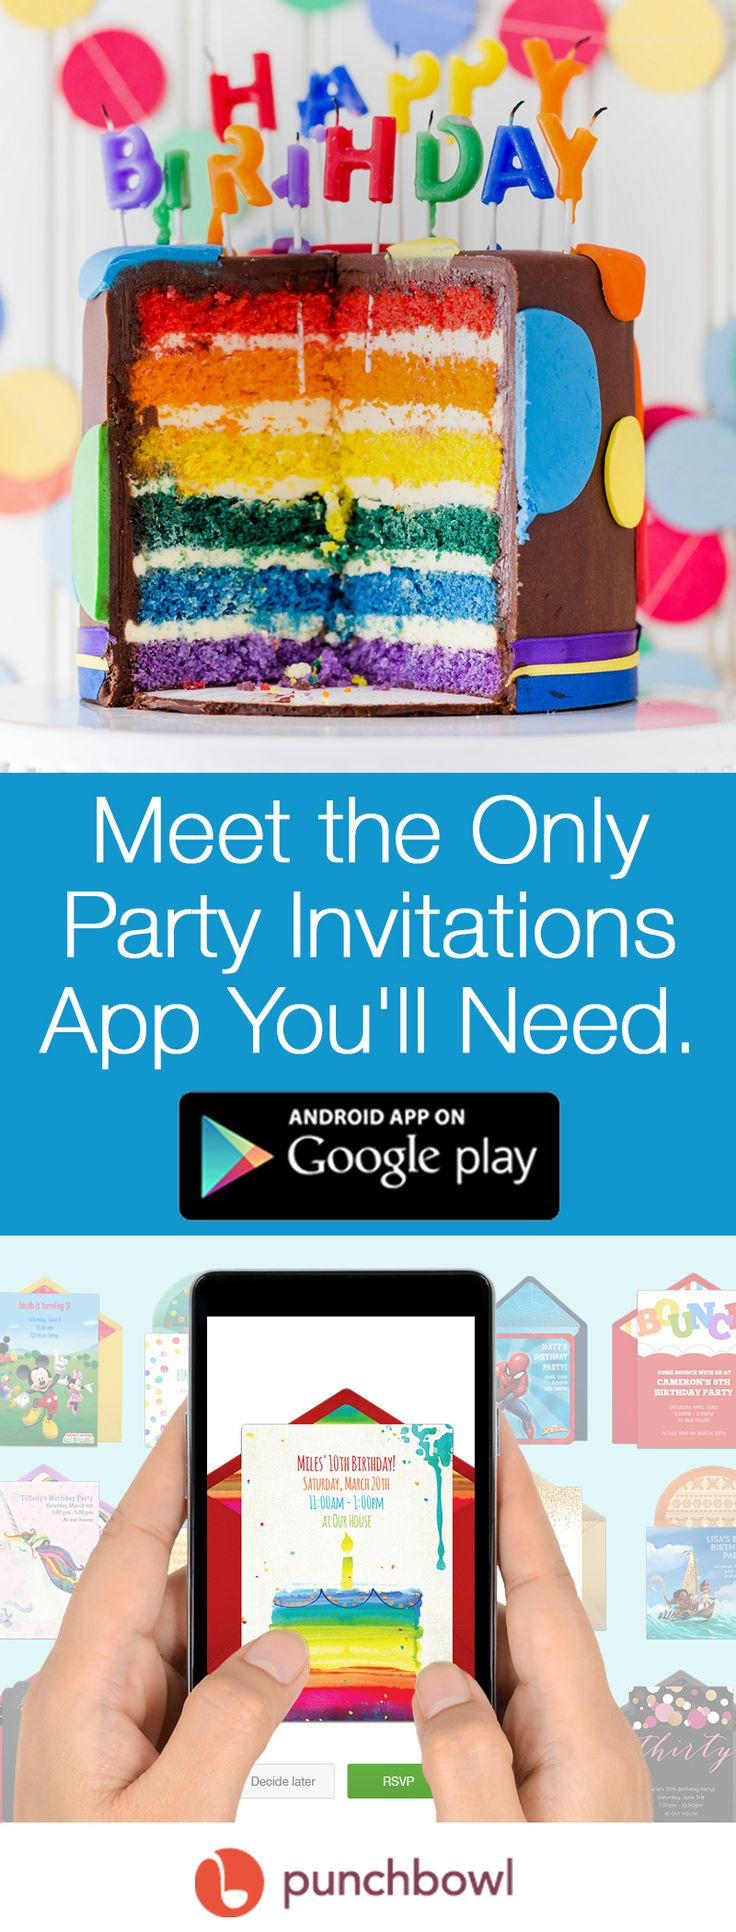 Paper invites are too formal, and emails are too casual. Get it just right with online invitations from Punchbowl. We've got everything you need for your birthday party.   https://play.google.com/store/apps/details?id=com.punchbowl.mobile&hl=en